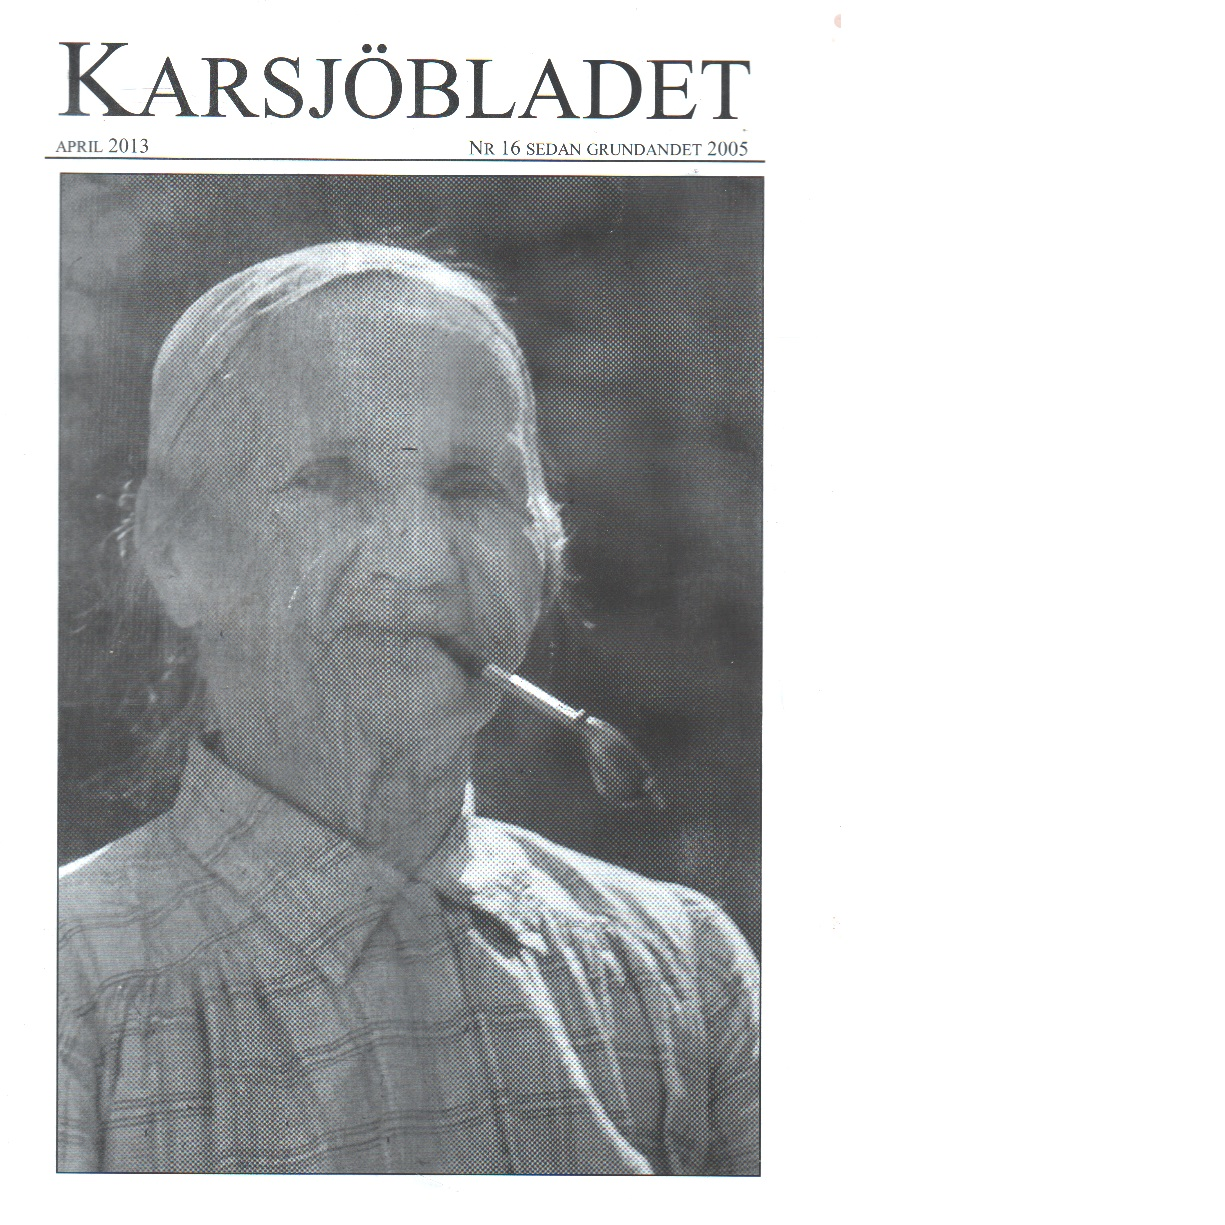 Karsjöbladet 16 - Red.